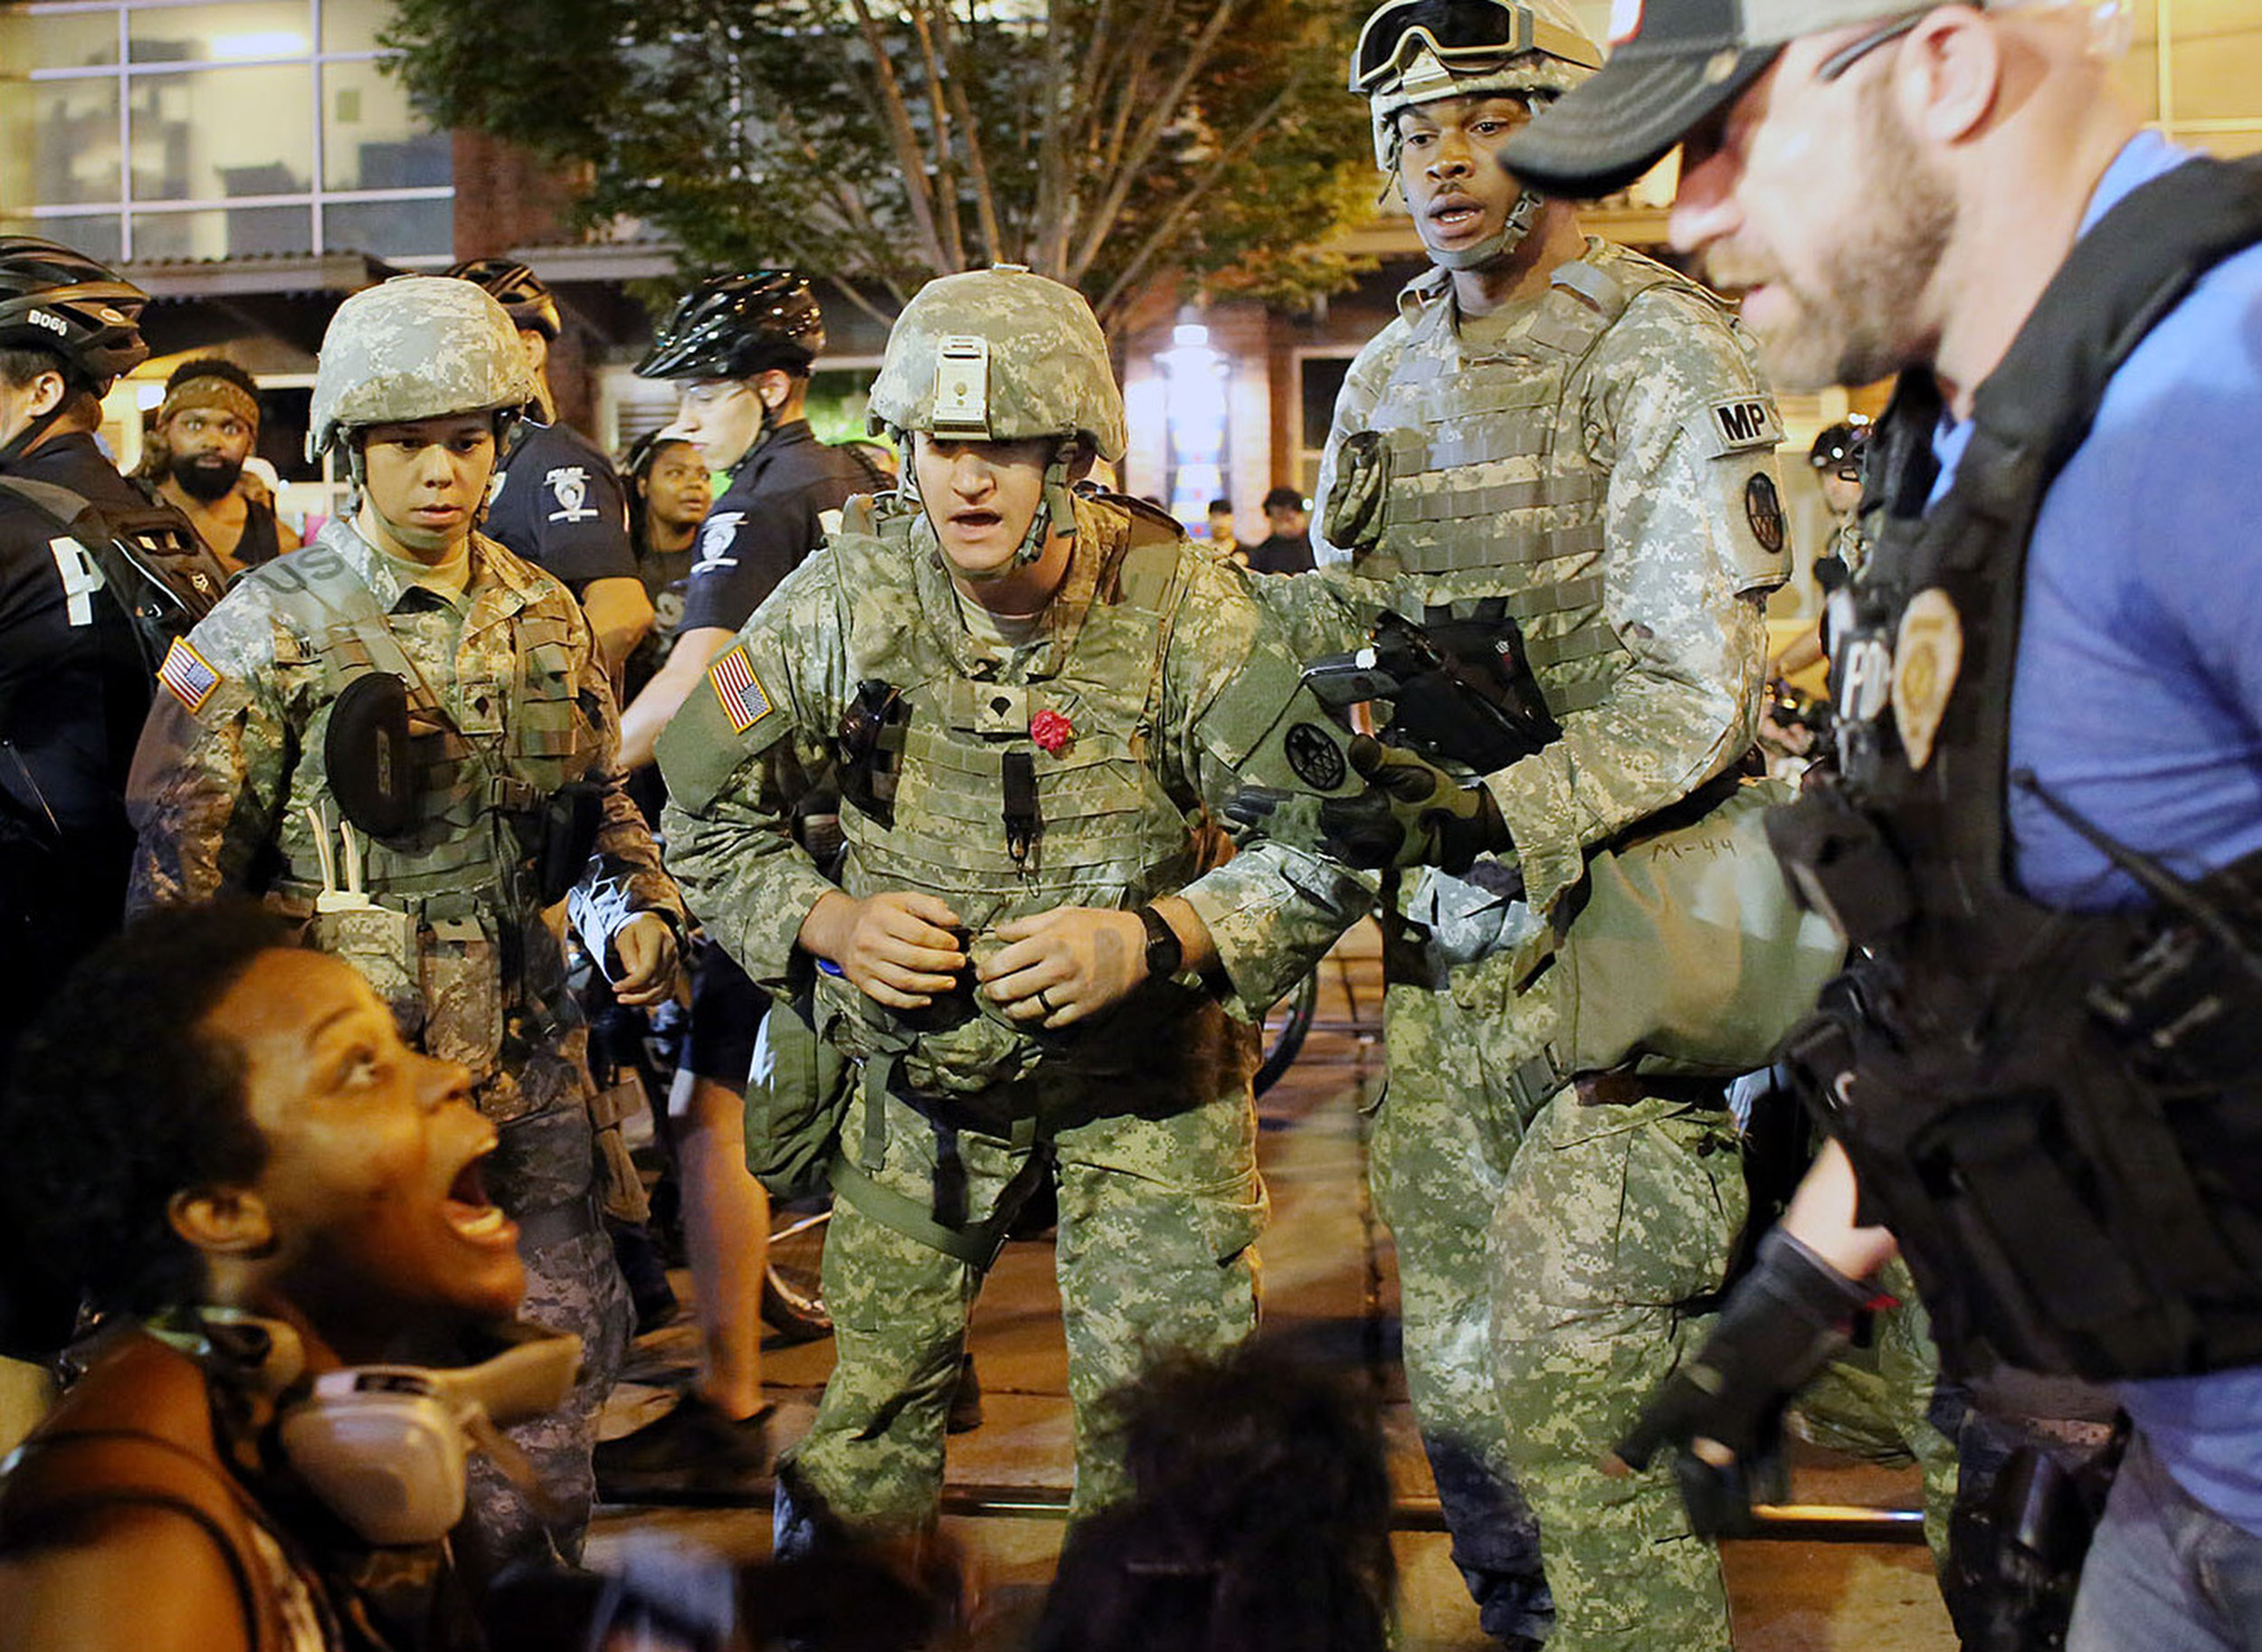 Members of the North Carolina National Guard and police officers attempt to assist a protestor having a medical emergency, Sept. 22, 2016, on East Trade Street in downtown Charlotte, N.C. The protester declined assistance.